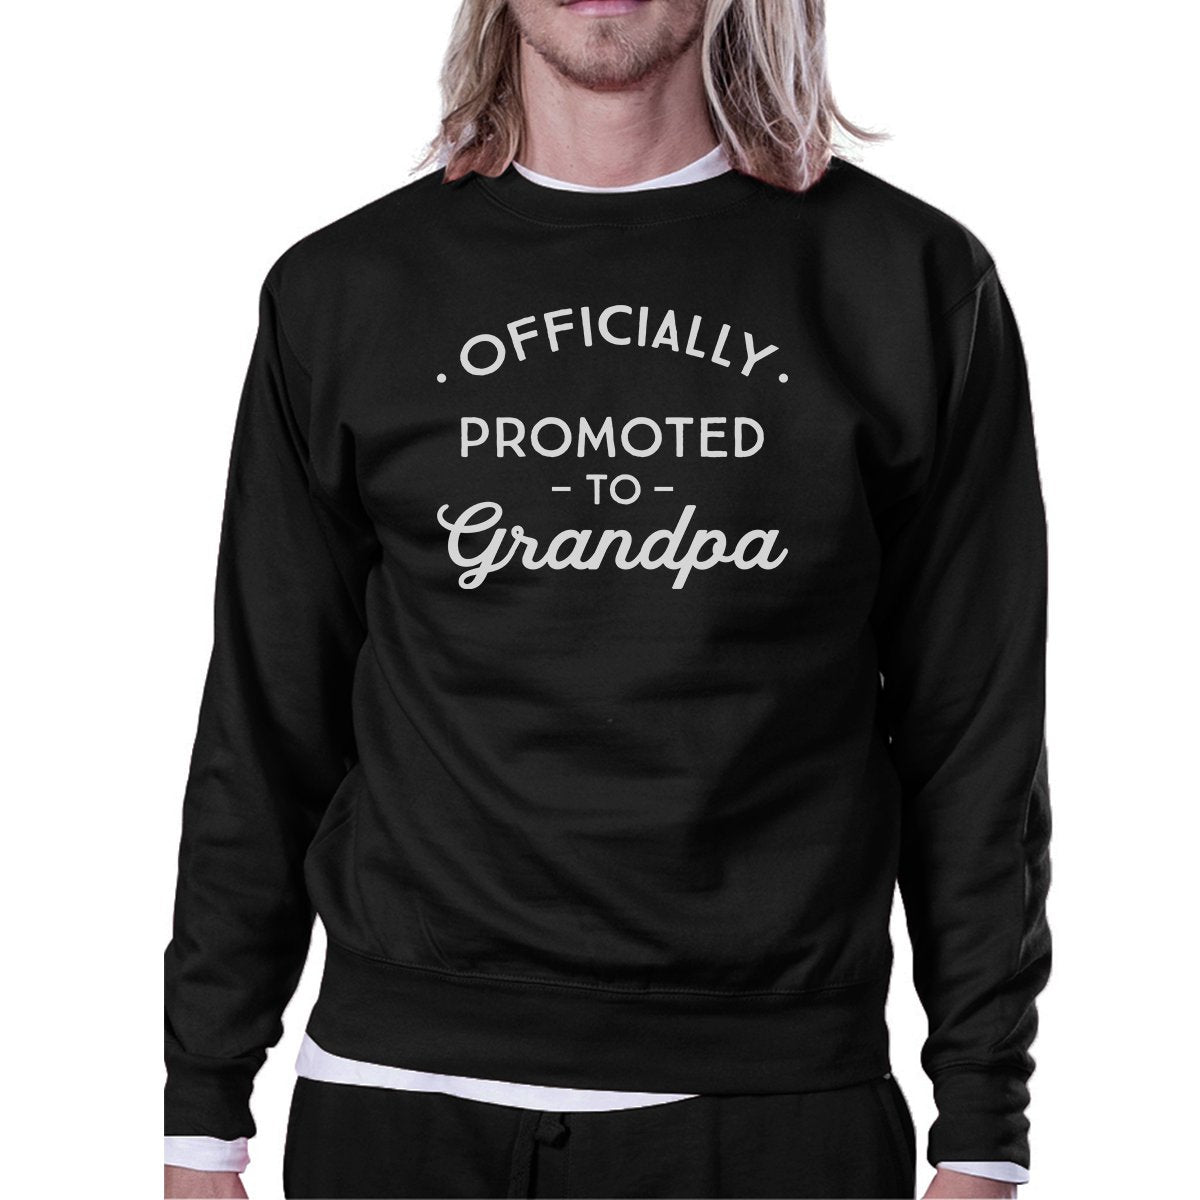 Officially Promoted To Grandpa Black Sweatshirt